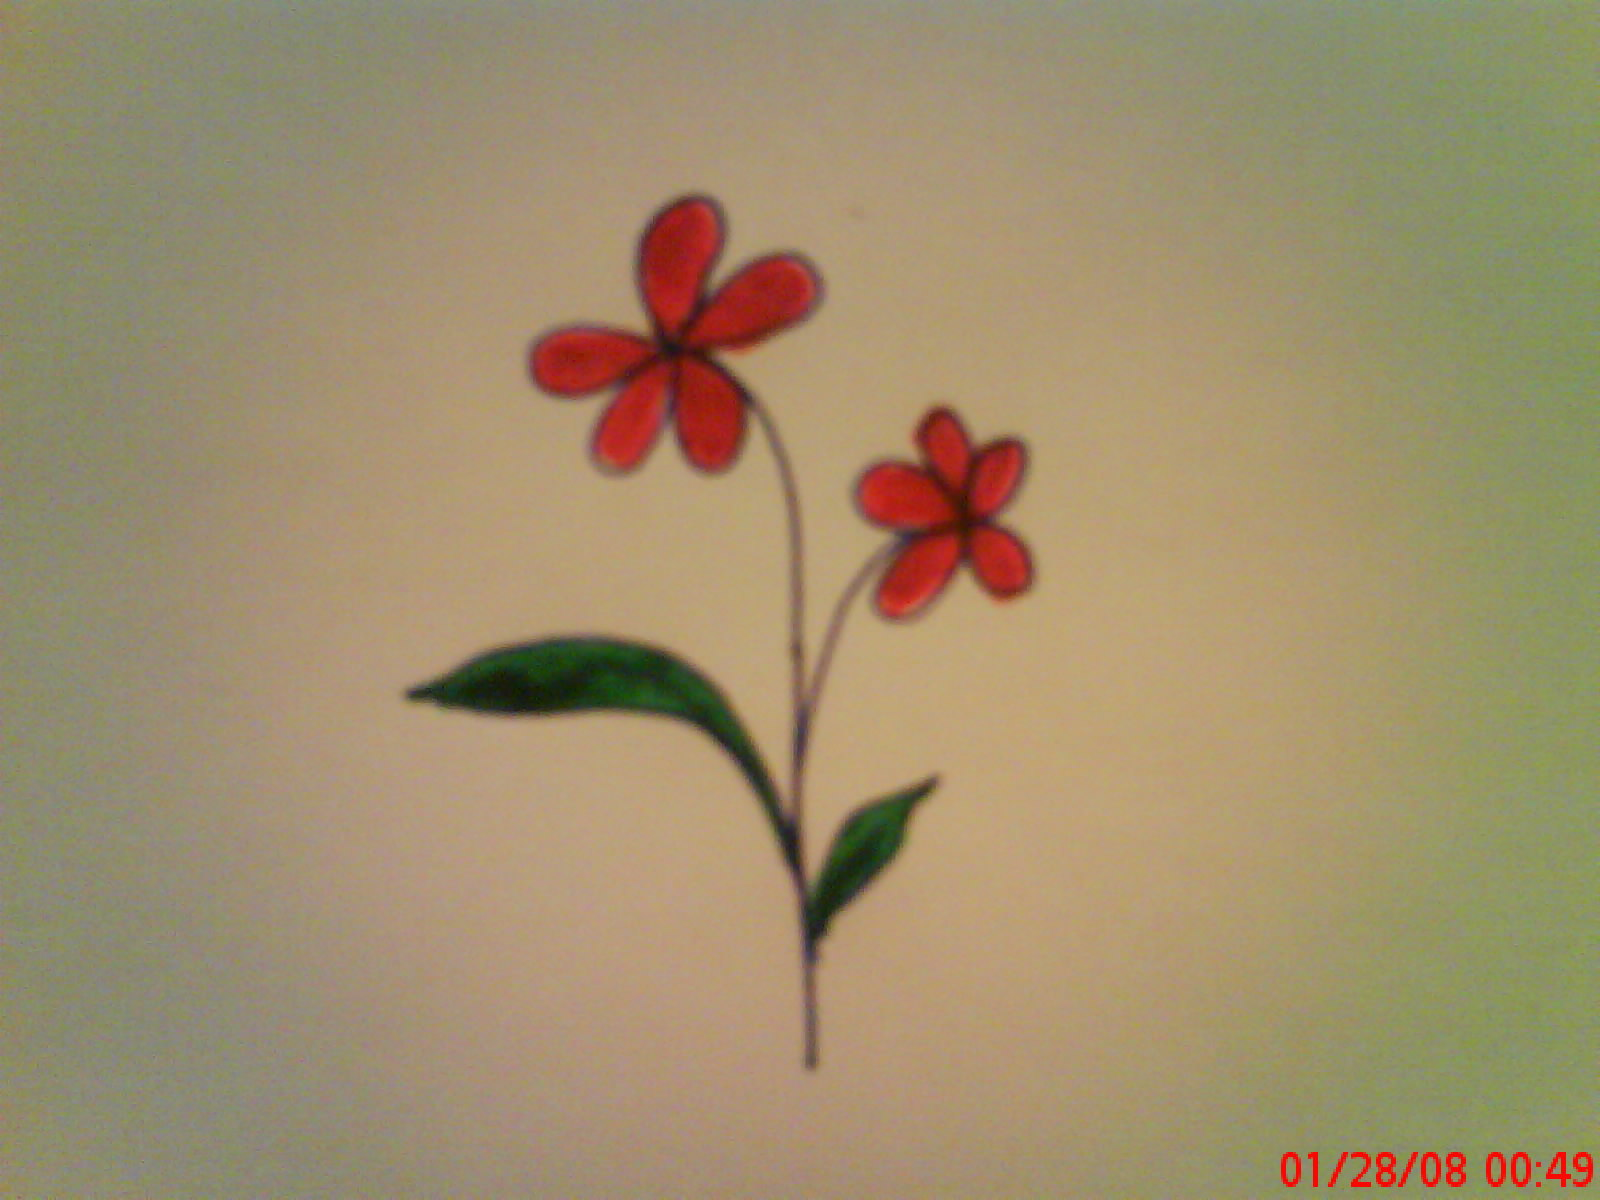 How To Draw A Flower 3 Steps With Pictures Instructables